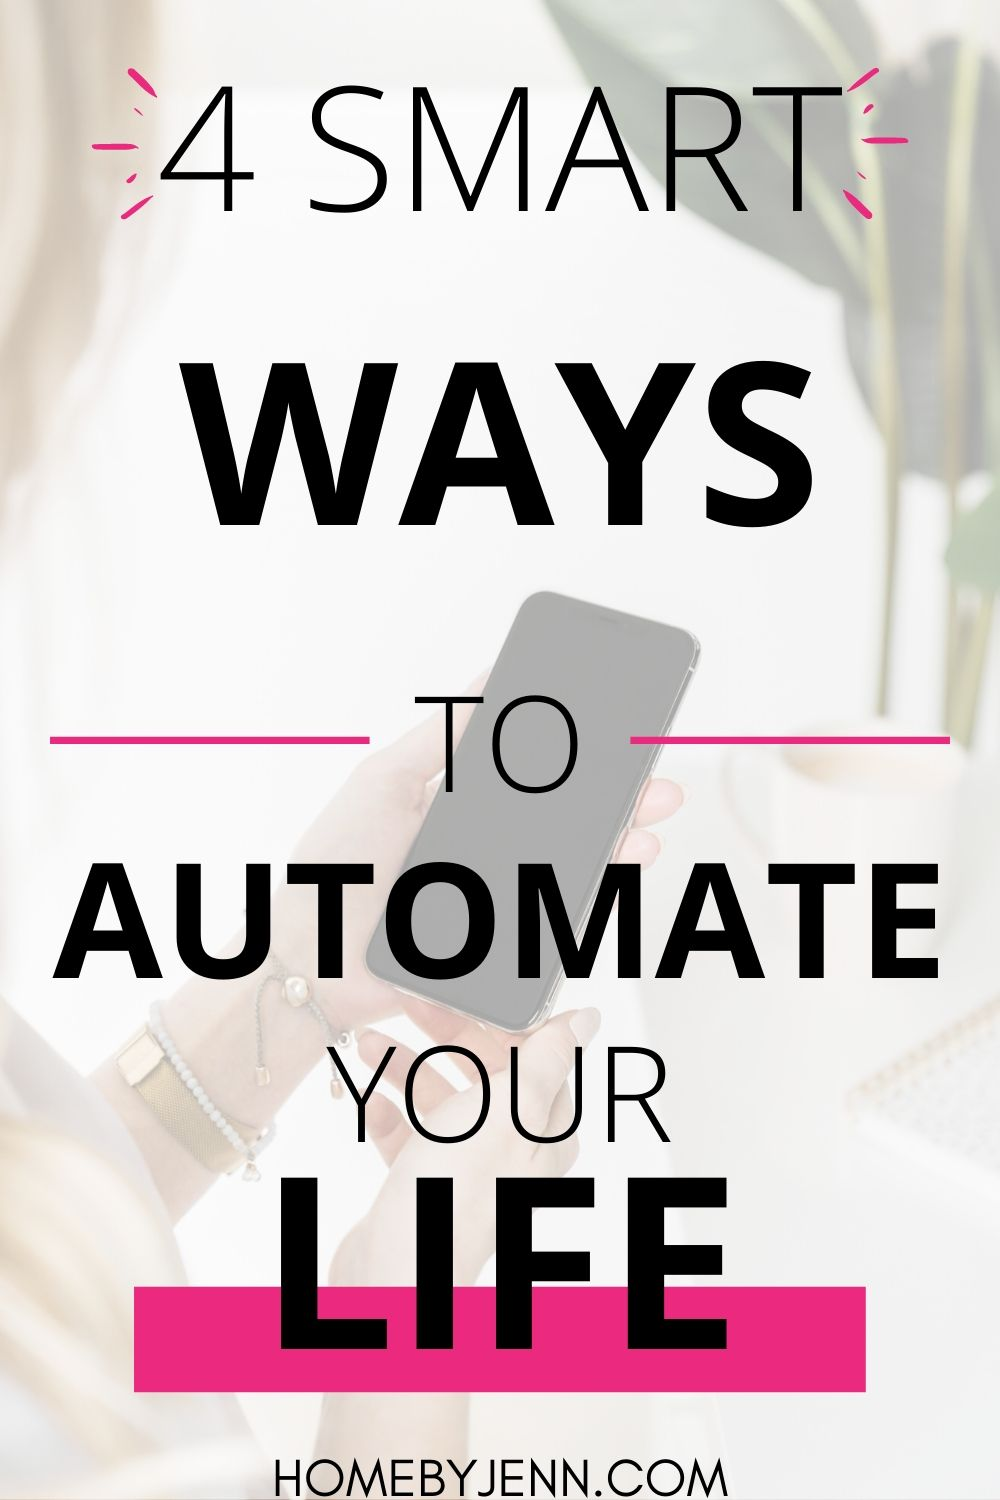 Time management tips for anyone who needs to save time. These time saving tips by using automating apps will help you organize your time. #timemanagement #timemanagementtips #timesavingtips #timesaving #busymomtimesavingtips via @homebyjenn